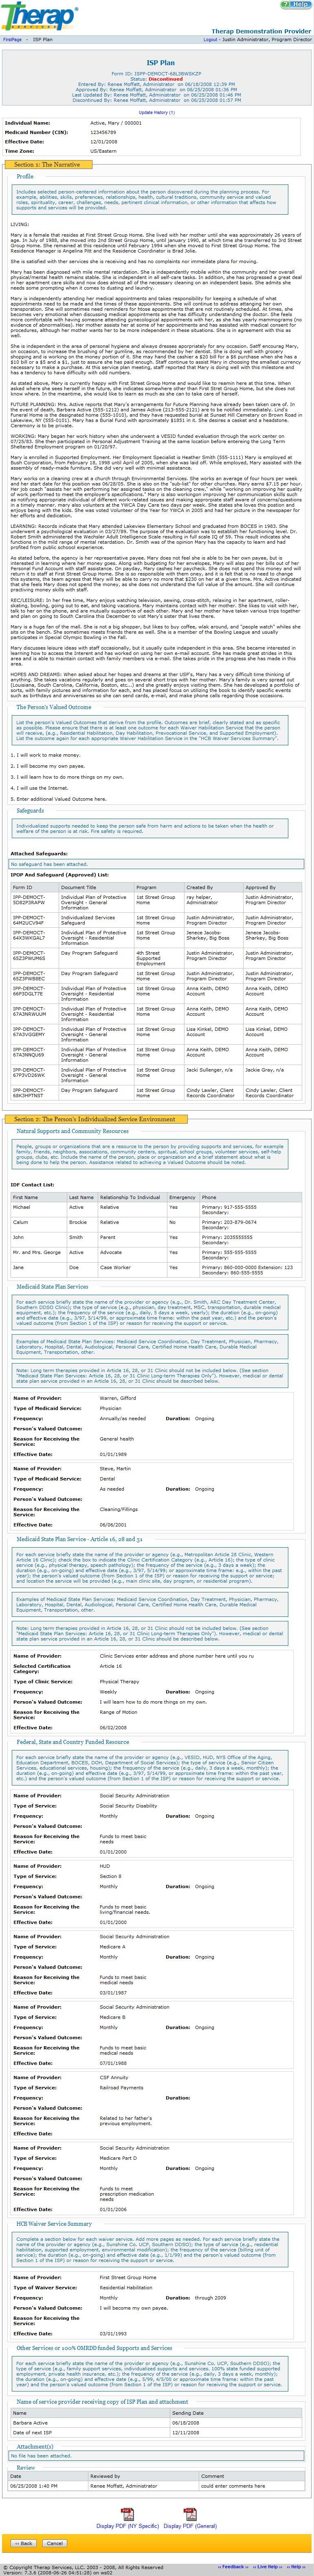 Screenshot of ISP Plan Page showing different sections